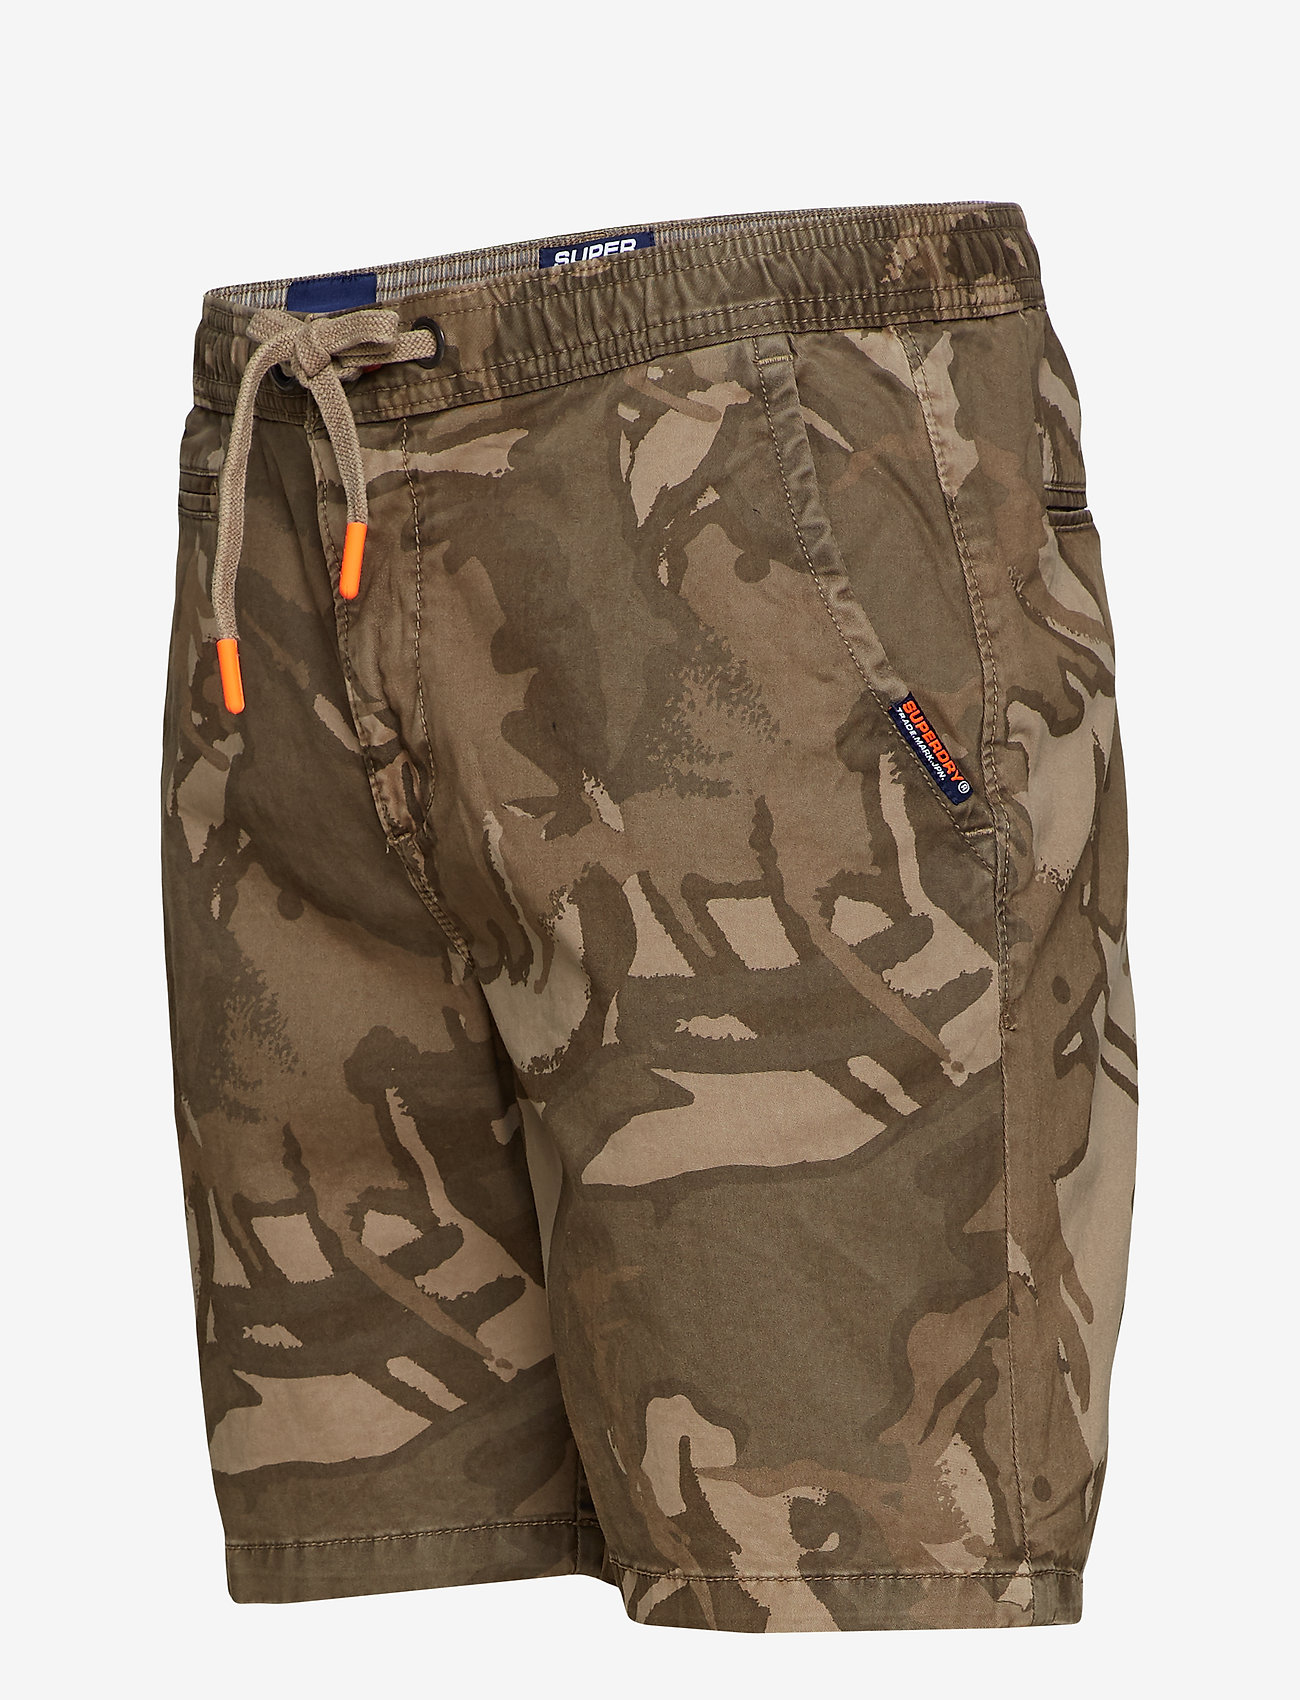 Superdry SUNSCORCHED SHORT - Badetøy SAND OUTLINE CAMO - Menn Klær